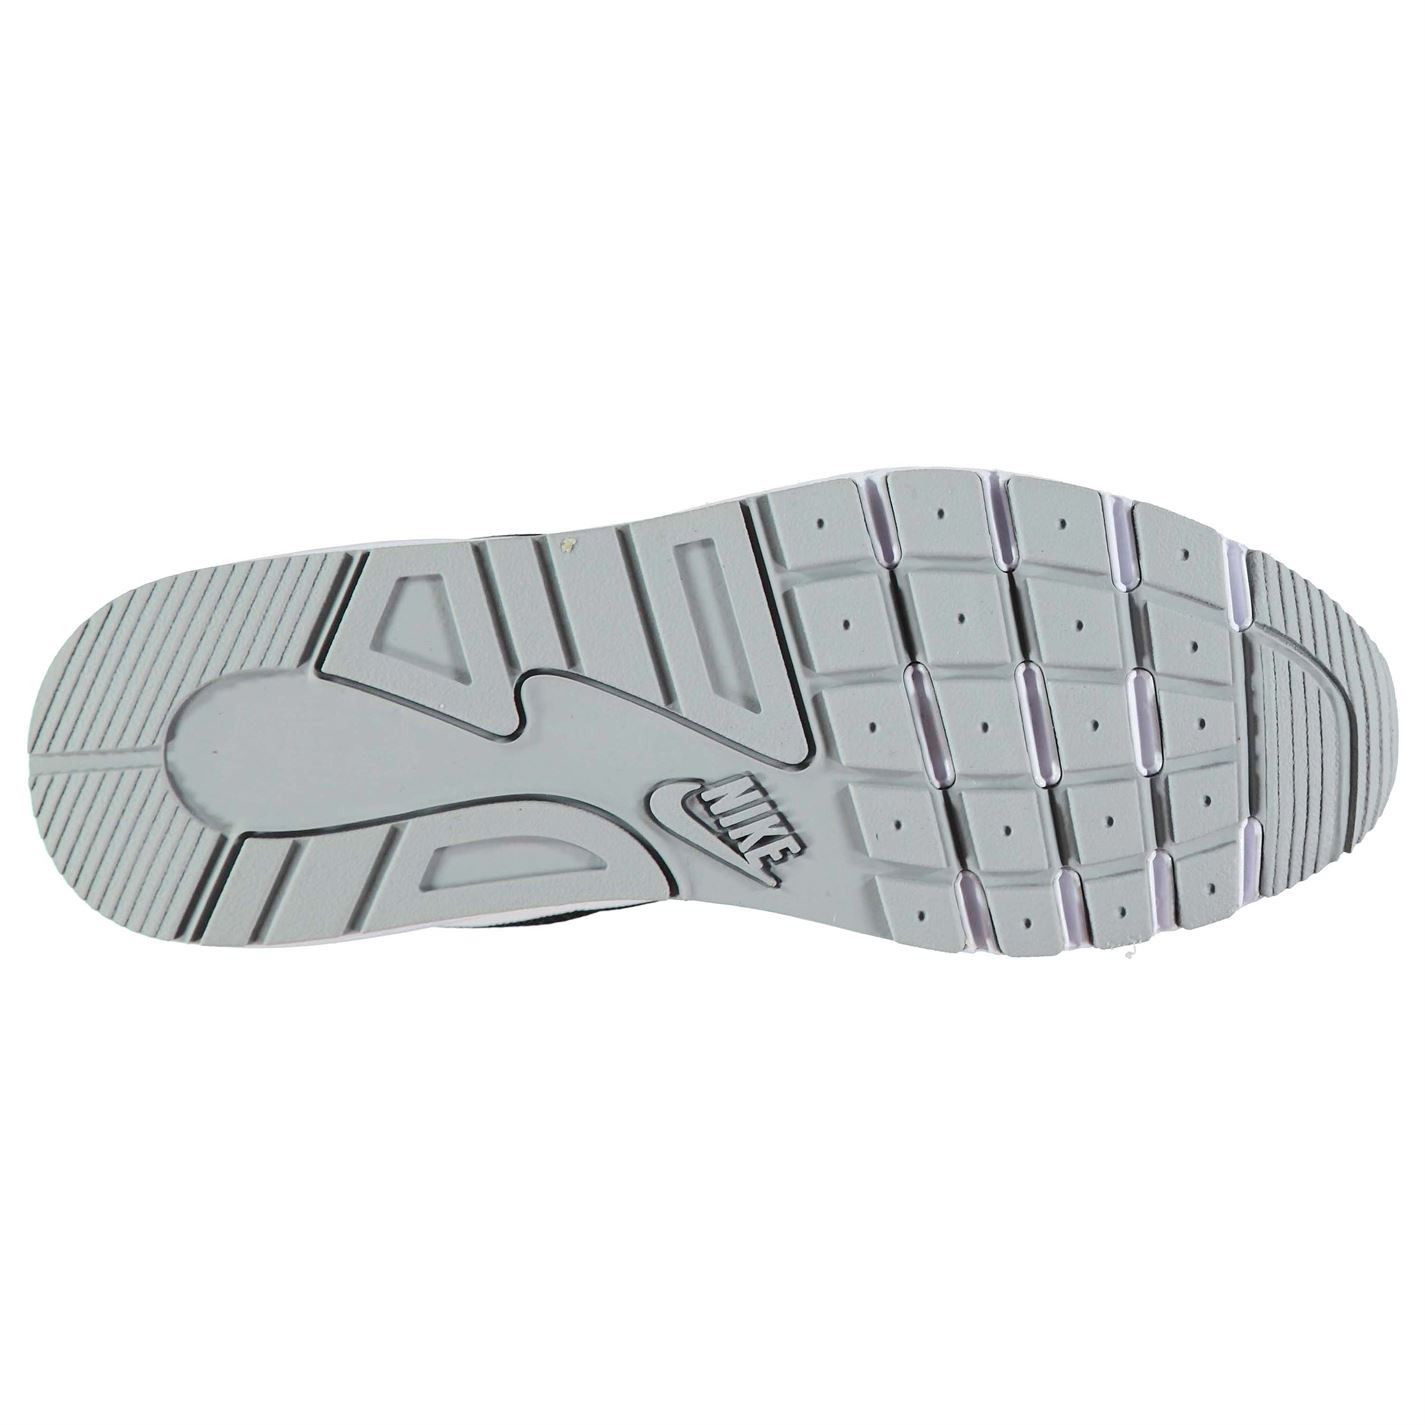 ... Nike Nightgazer LW SE Trainers Mens Black/White Athletic Sneakers Shoes  ...